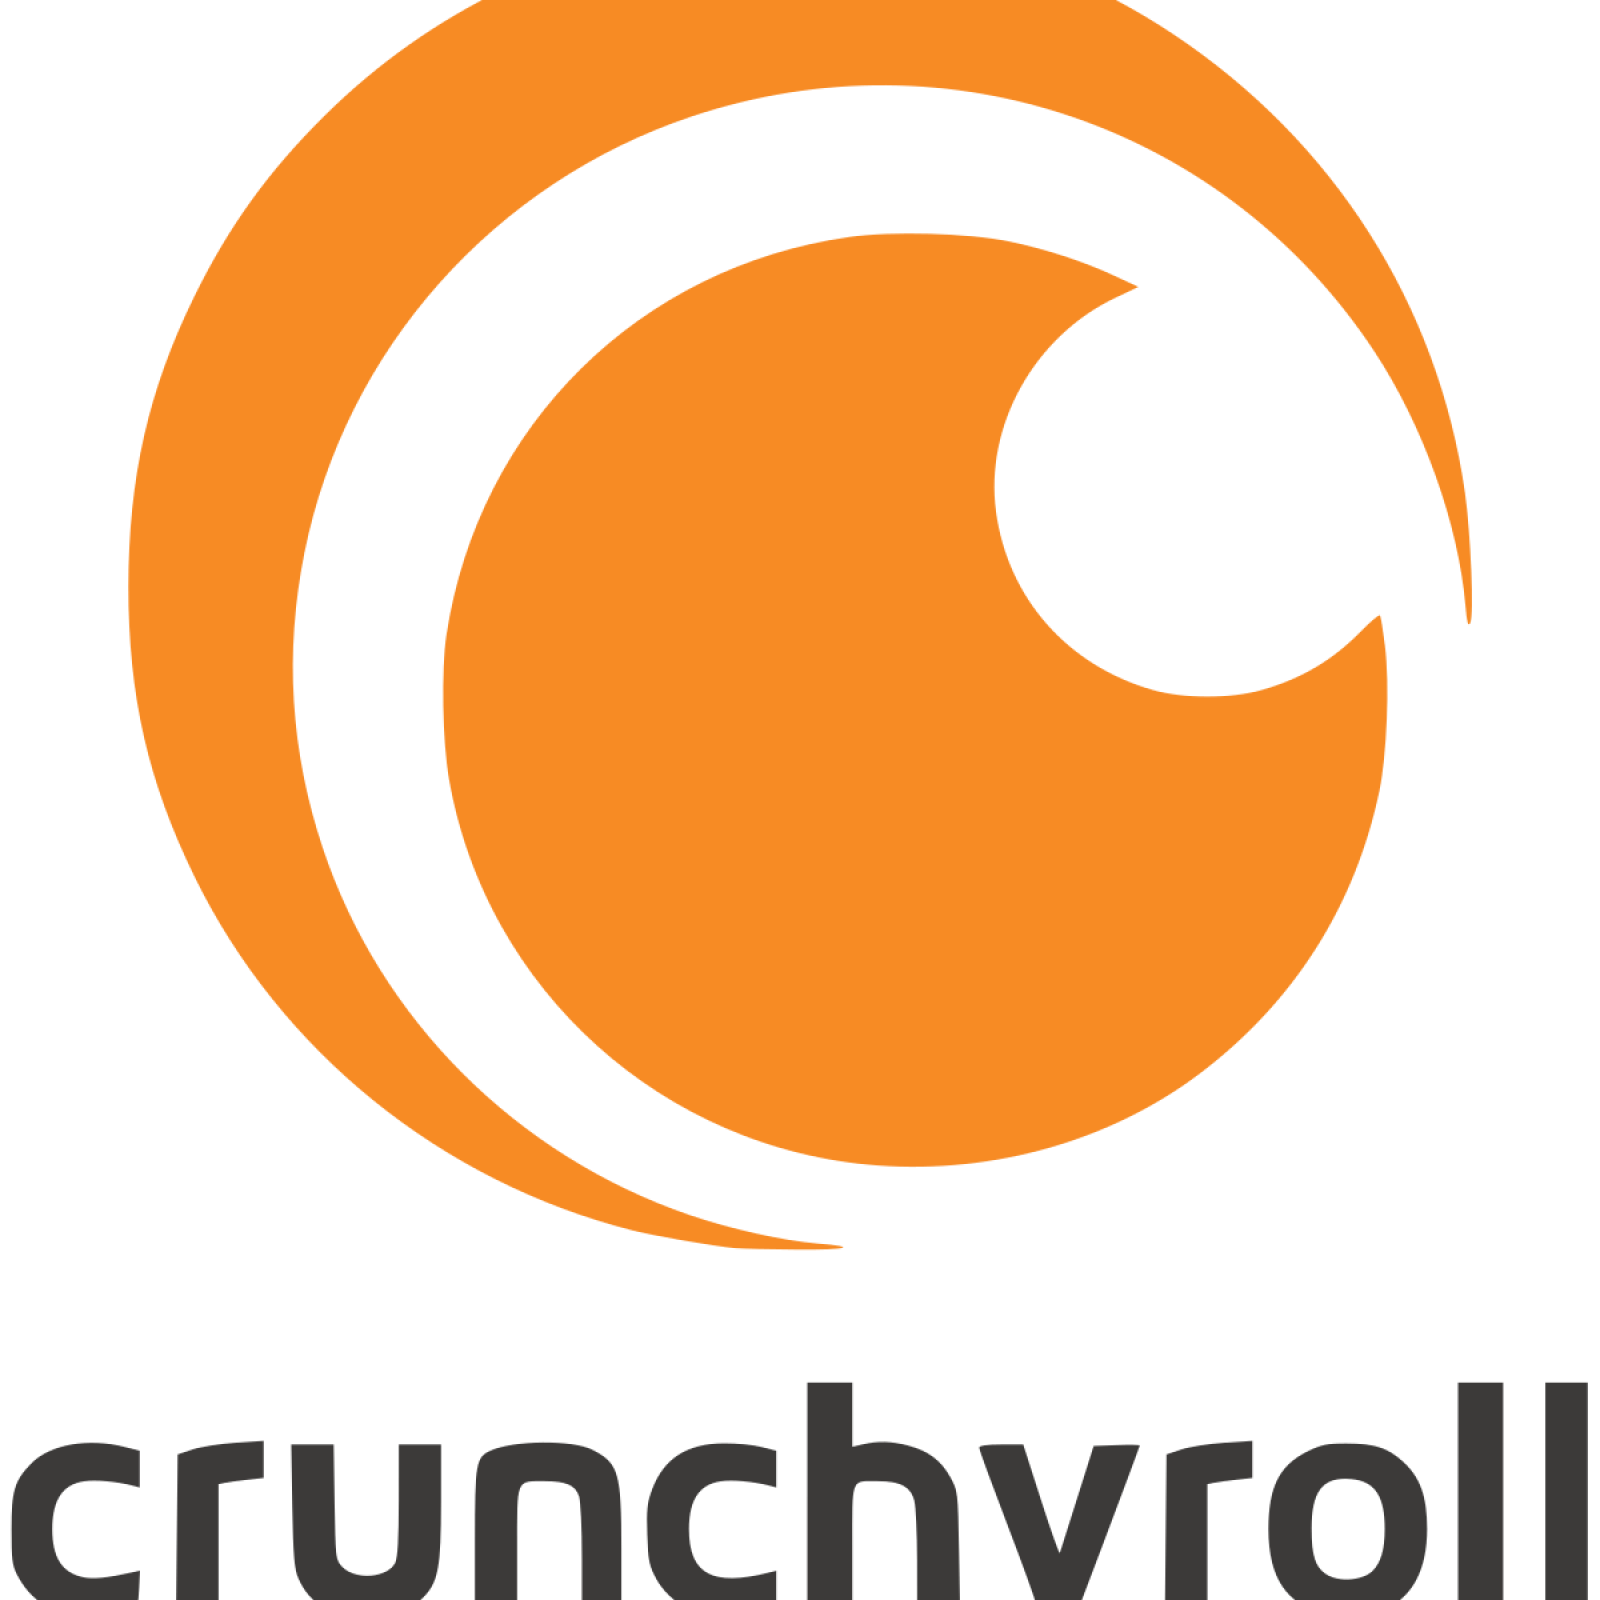 Funimation and CrunchyRoll Split Up: What Animes are Affected